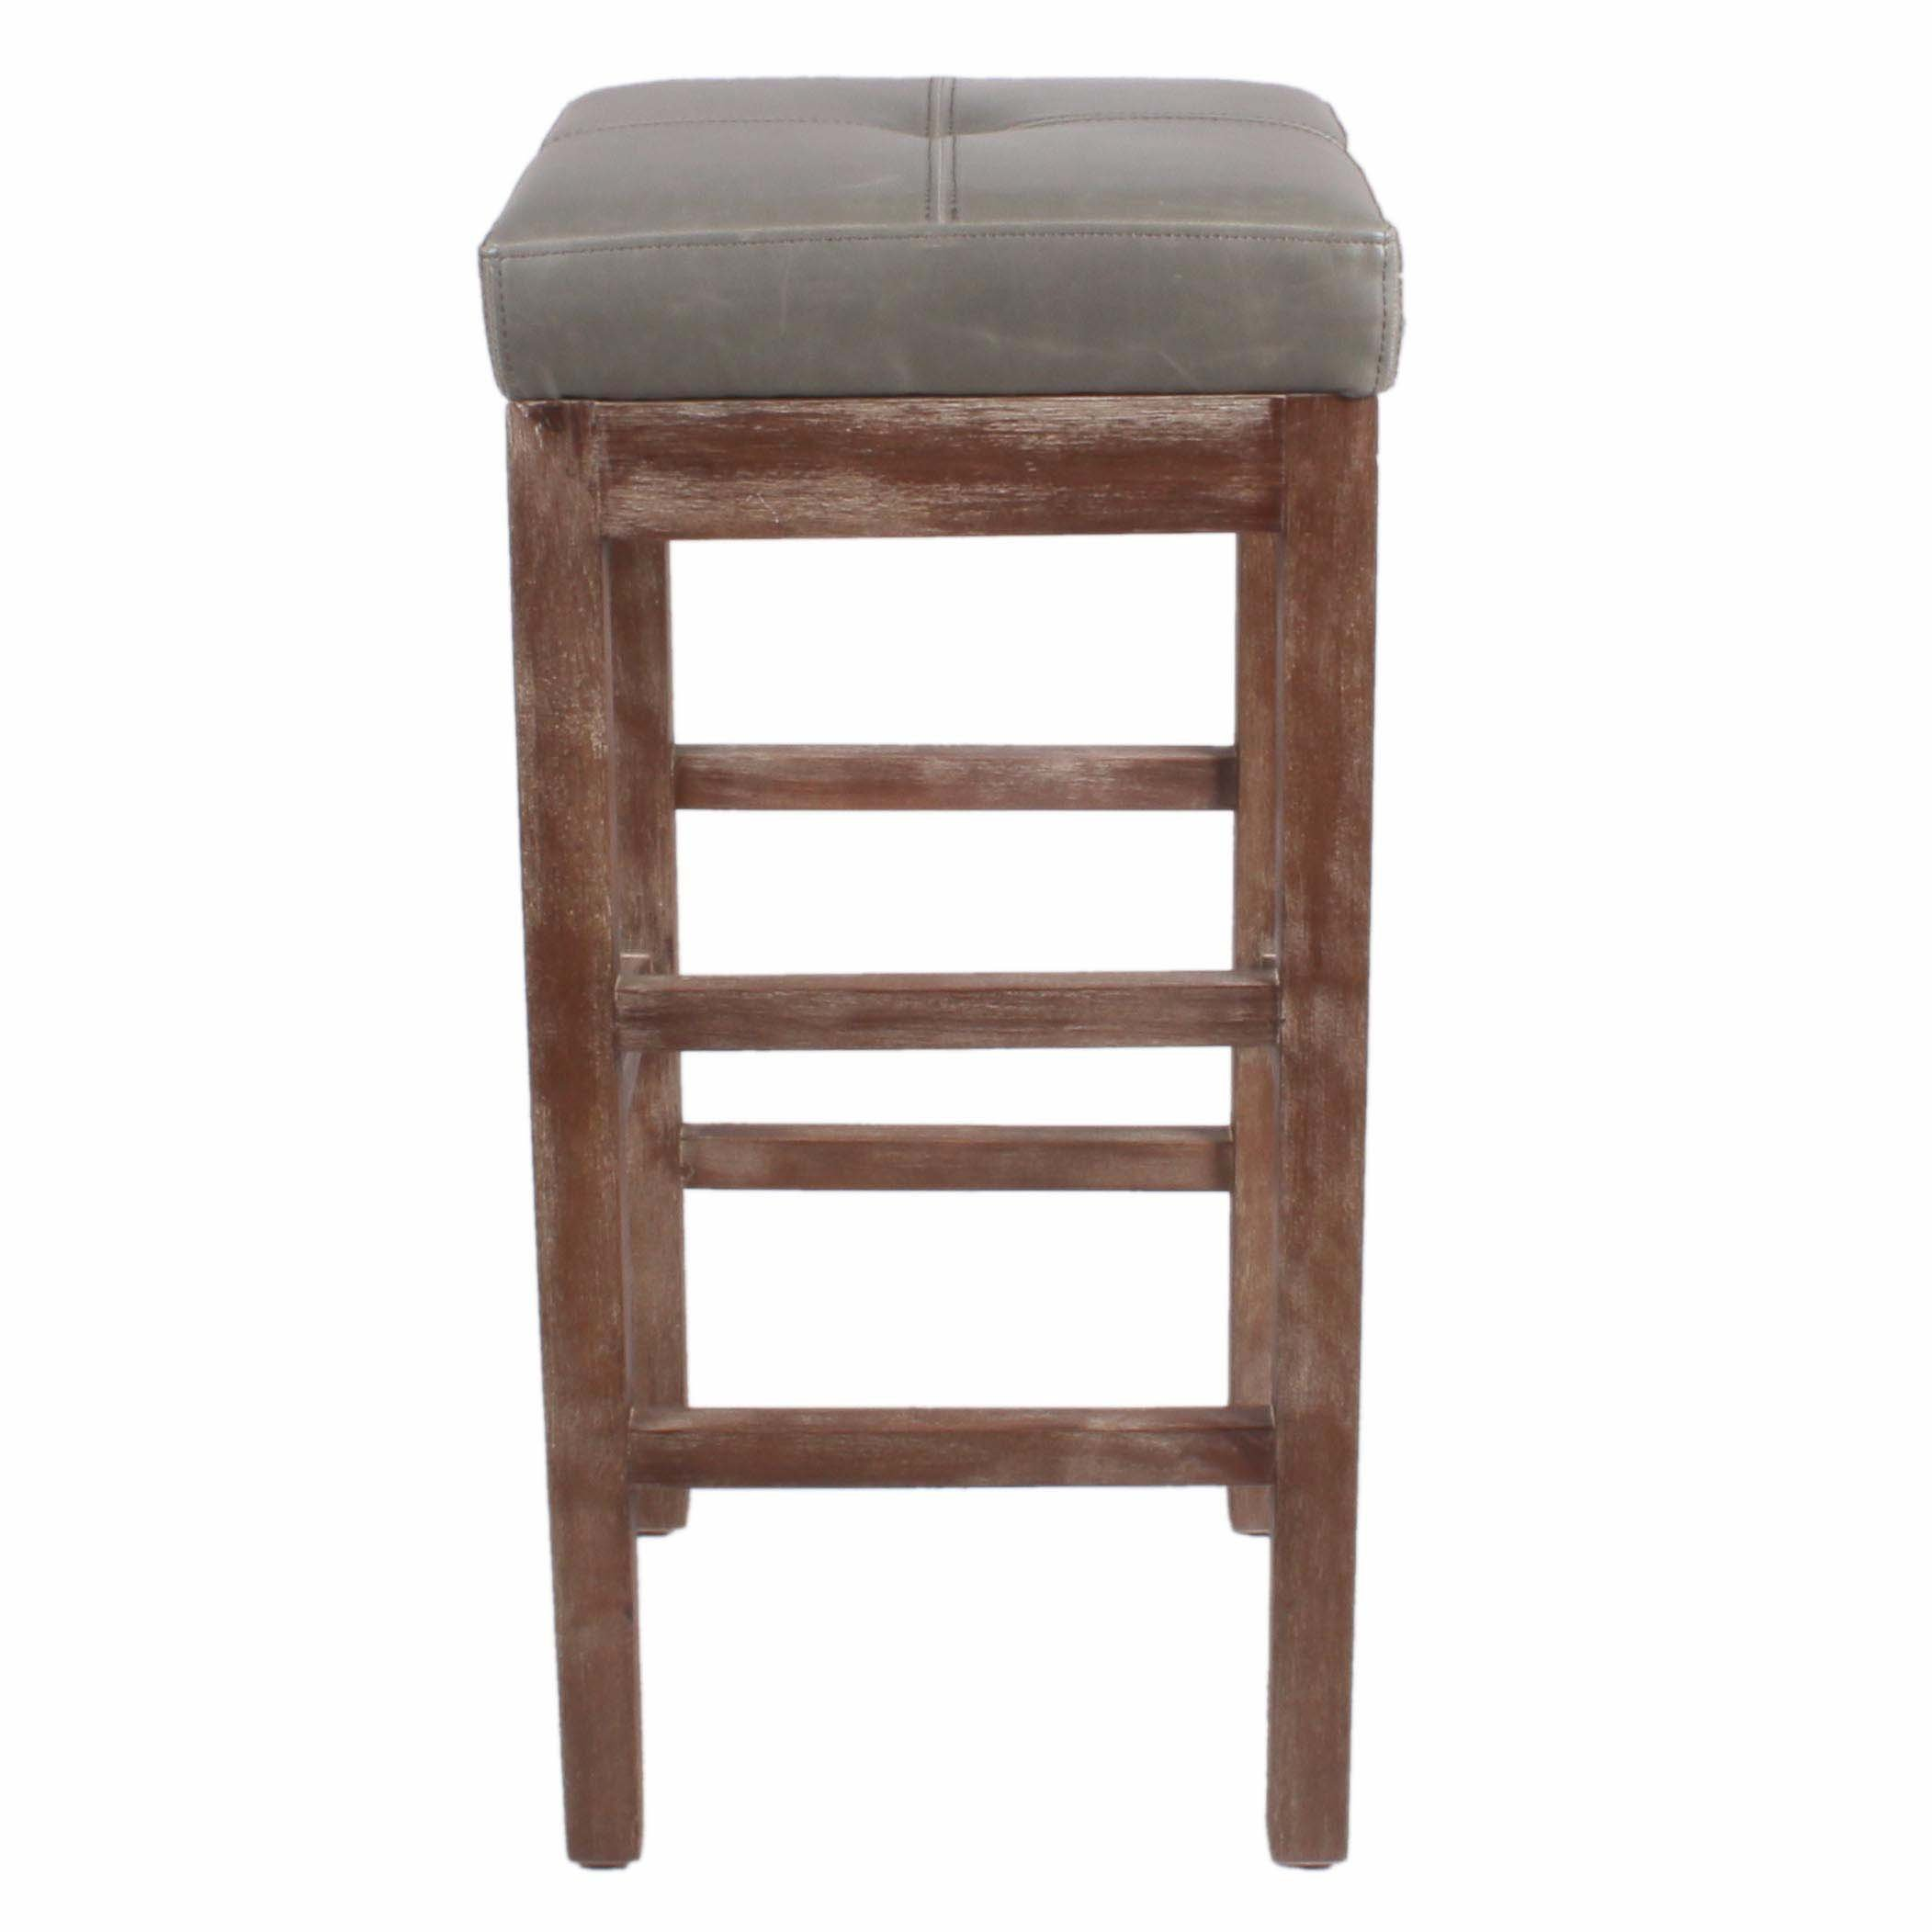 New Pacific Direct Valencia 27'' Bonded Leather Counter Stool, Drift Wood Legs, Vintage Gray by New Pacific Direct (Image #2)